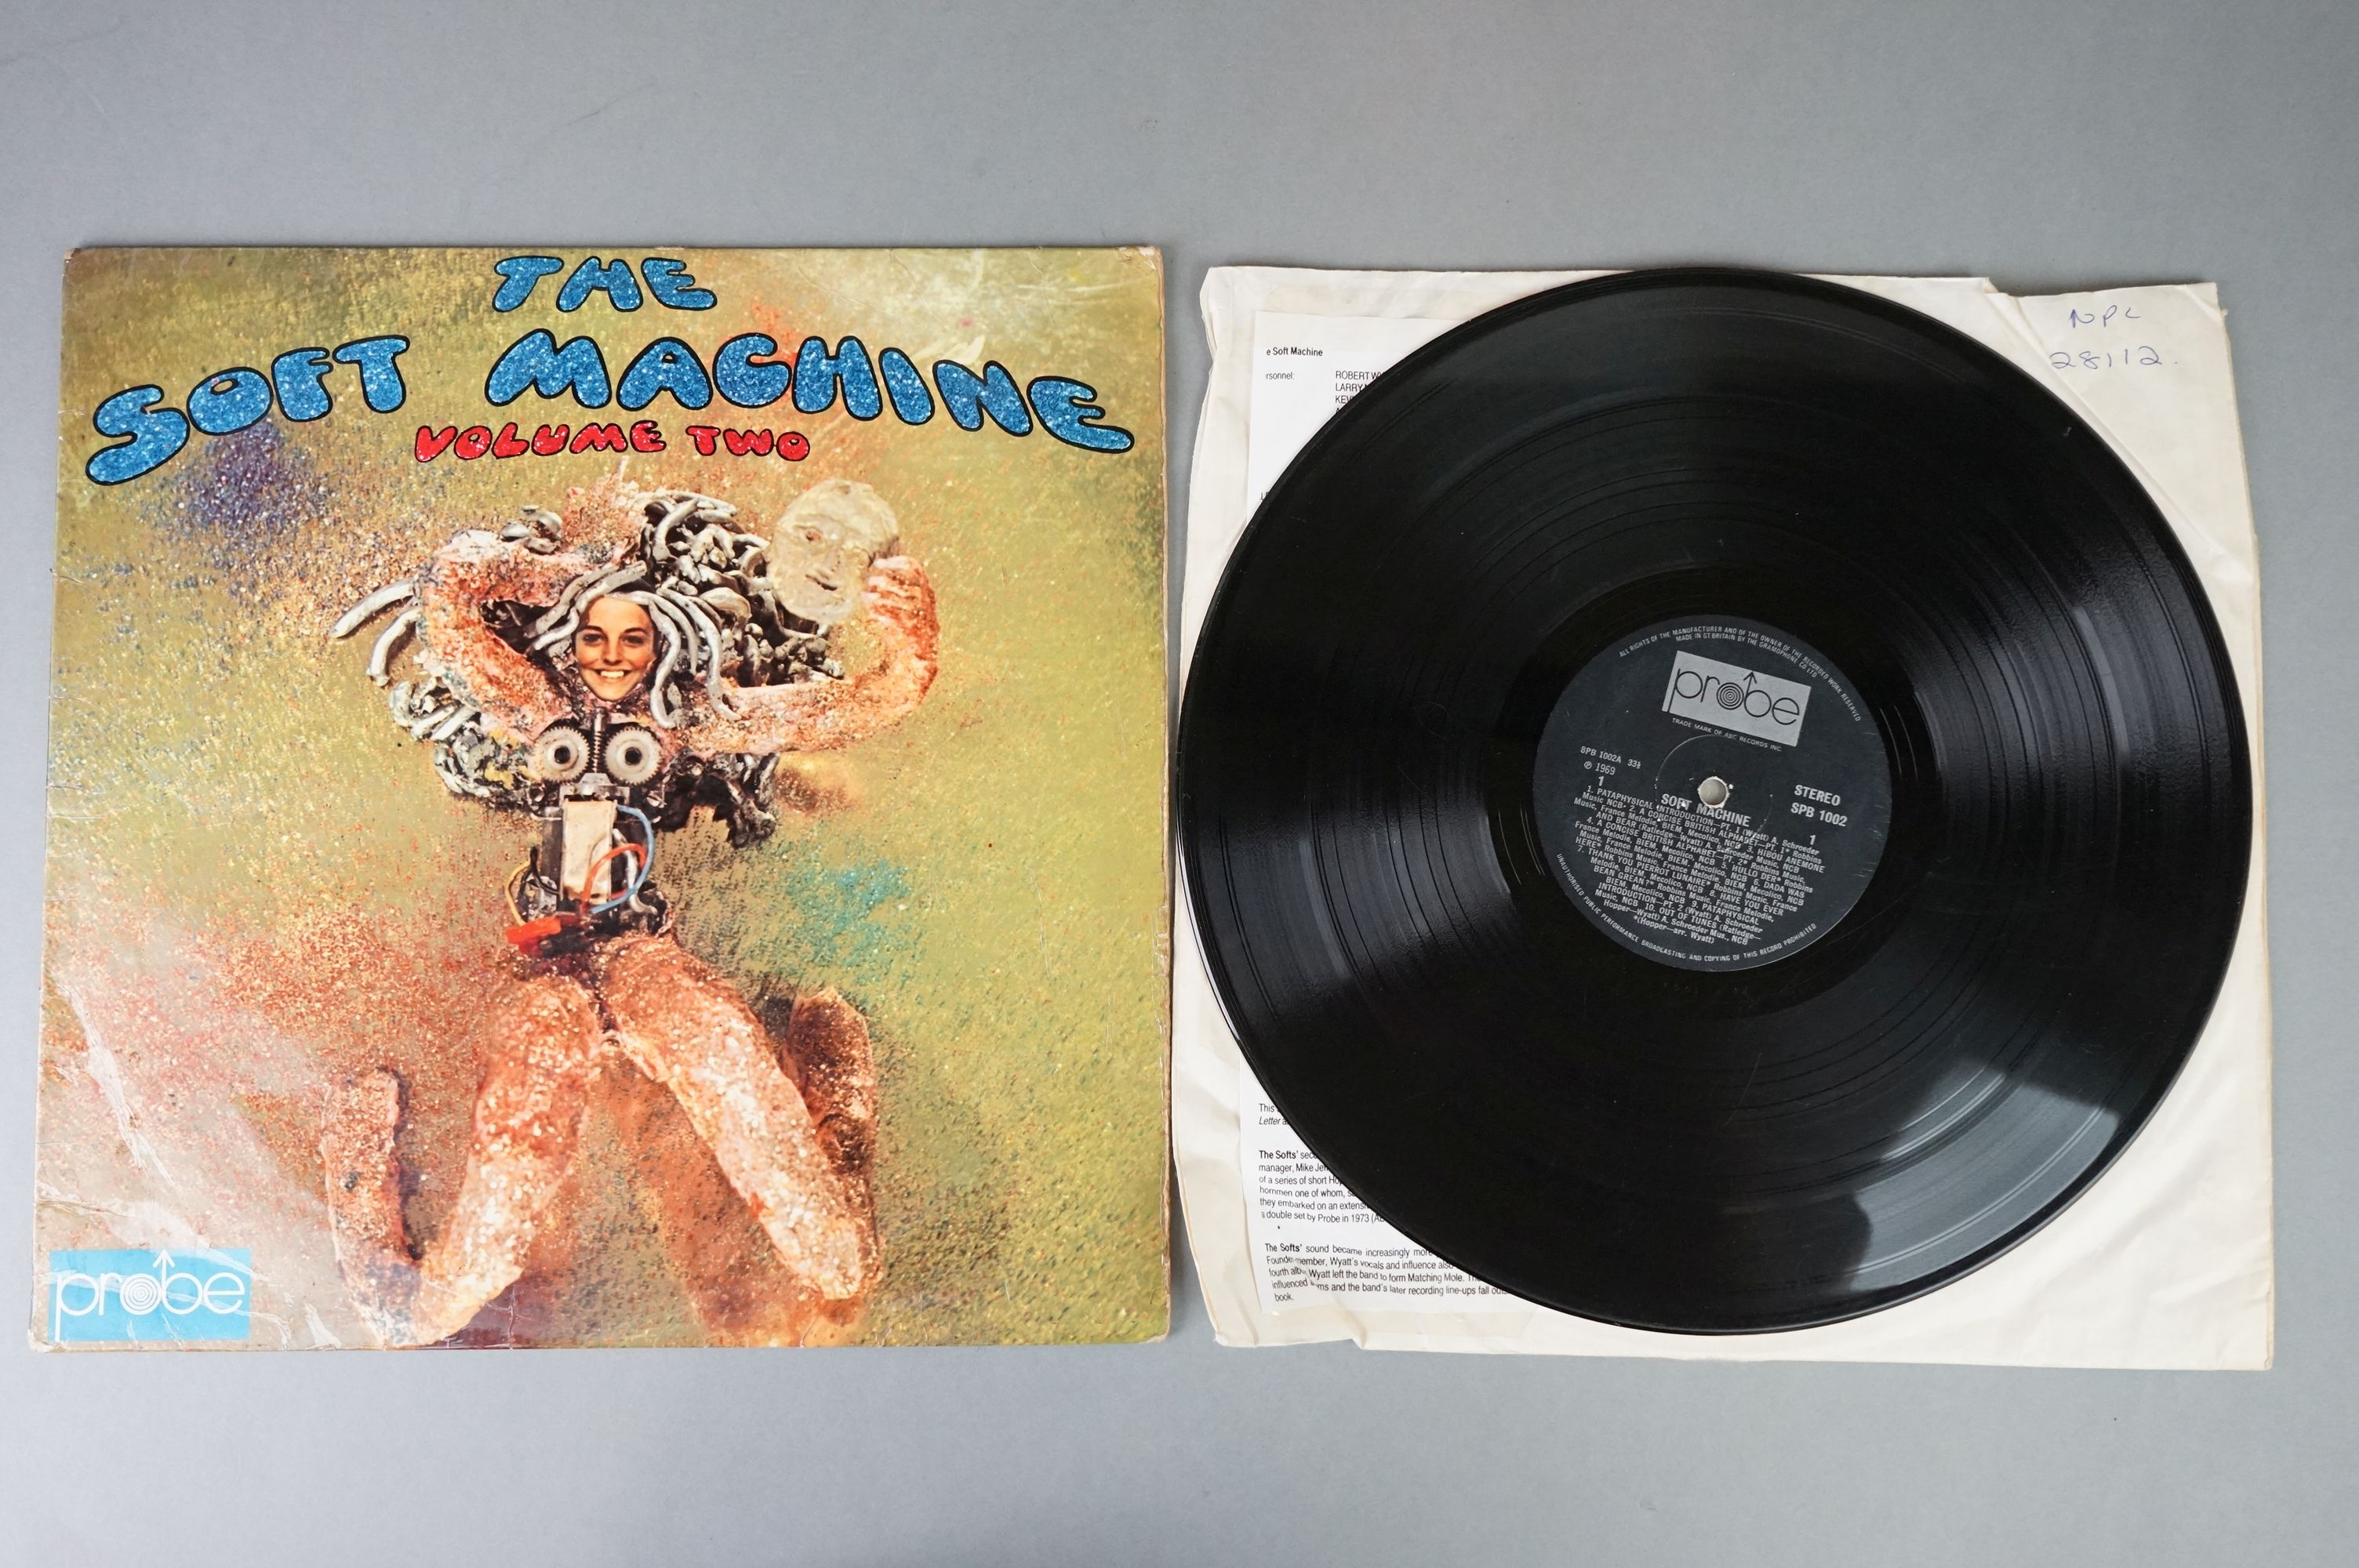 Vinyl - Two Soft Machine vinyl LP's to include Softs (EMI Records SHSP 4056), Volume Two (Probe - Image 2 of 9